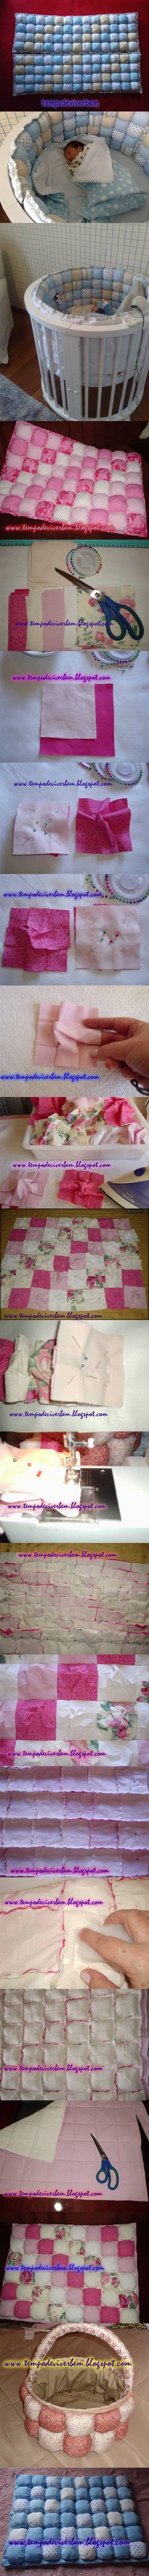 How to make Puff Baby Changing Station DIY tutorial instructions , How to, how to do, diy instructions, crafts, do it yourself, diy website,...